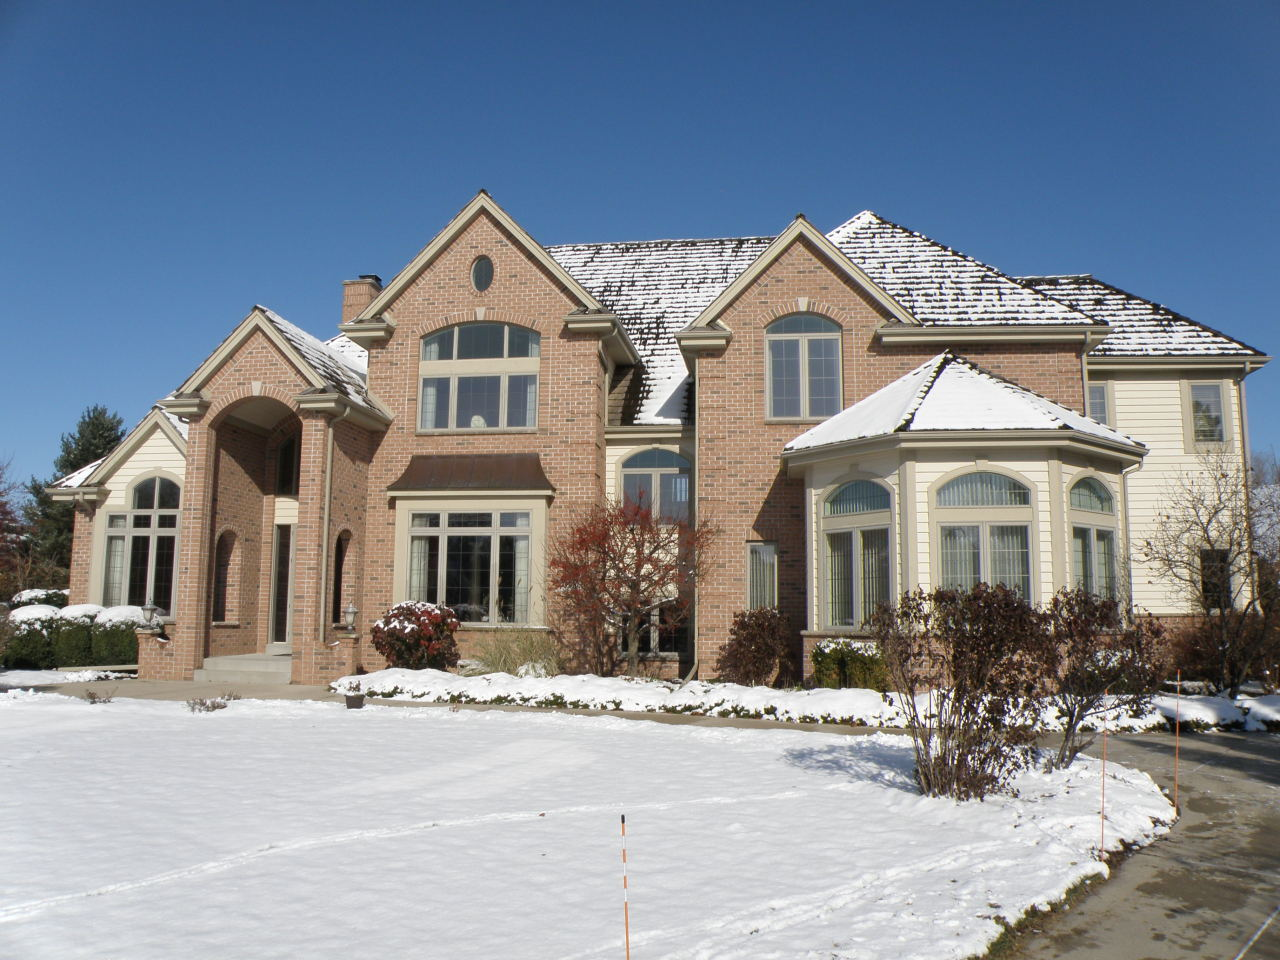 21160 Chancery Ct, Brookfield, Wisconsin 53045, 6 Bedrooms Bedrooms, 14 Rooms Rooms,5 BathroomsBathrooms,Single-Family,For Sale,Chancery Ct,1666098